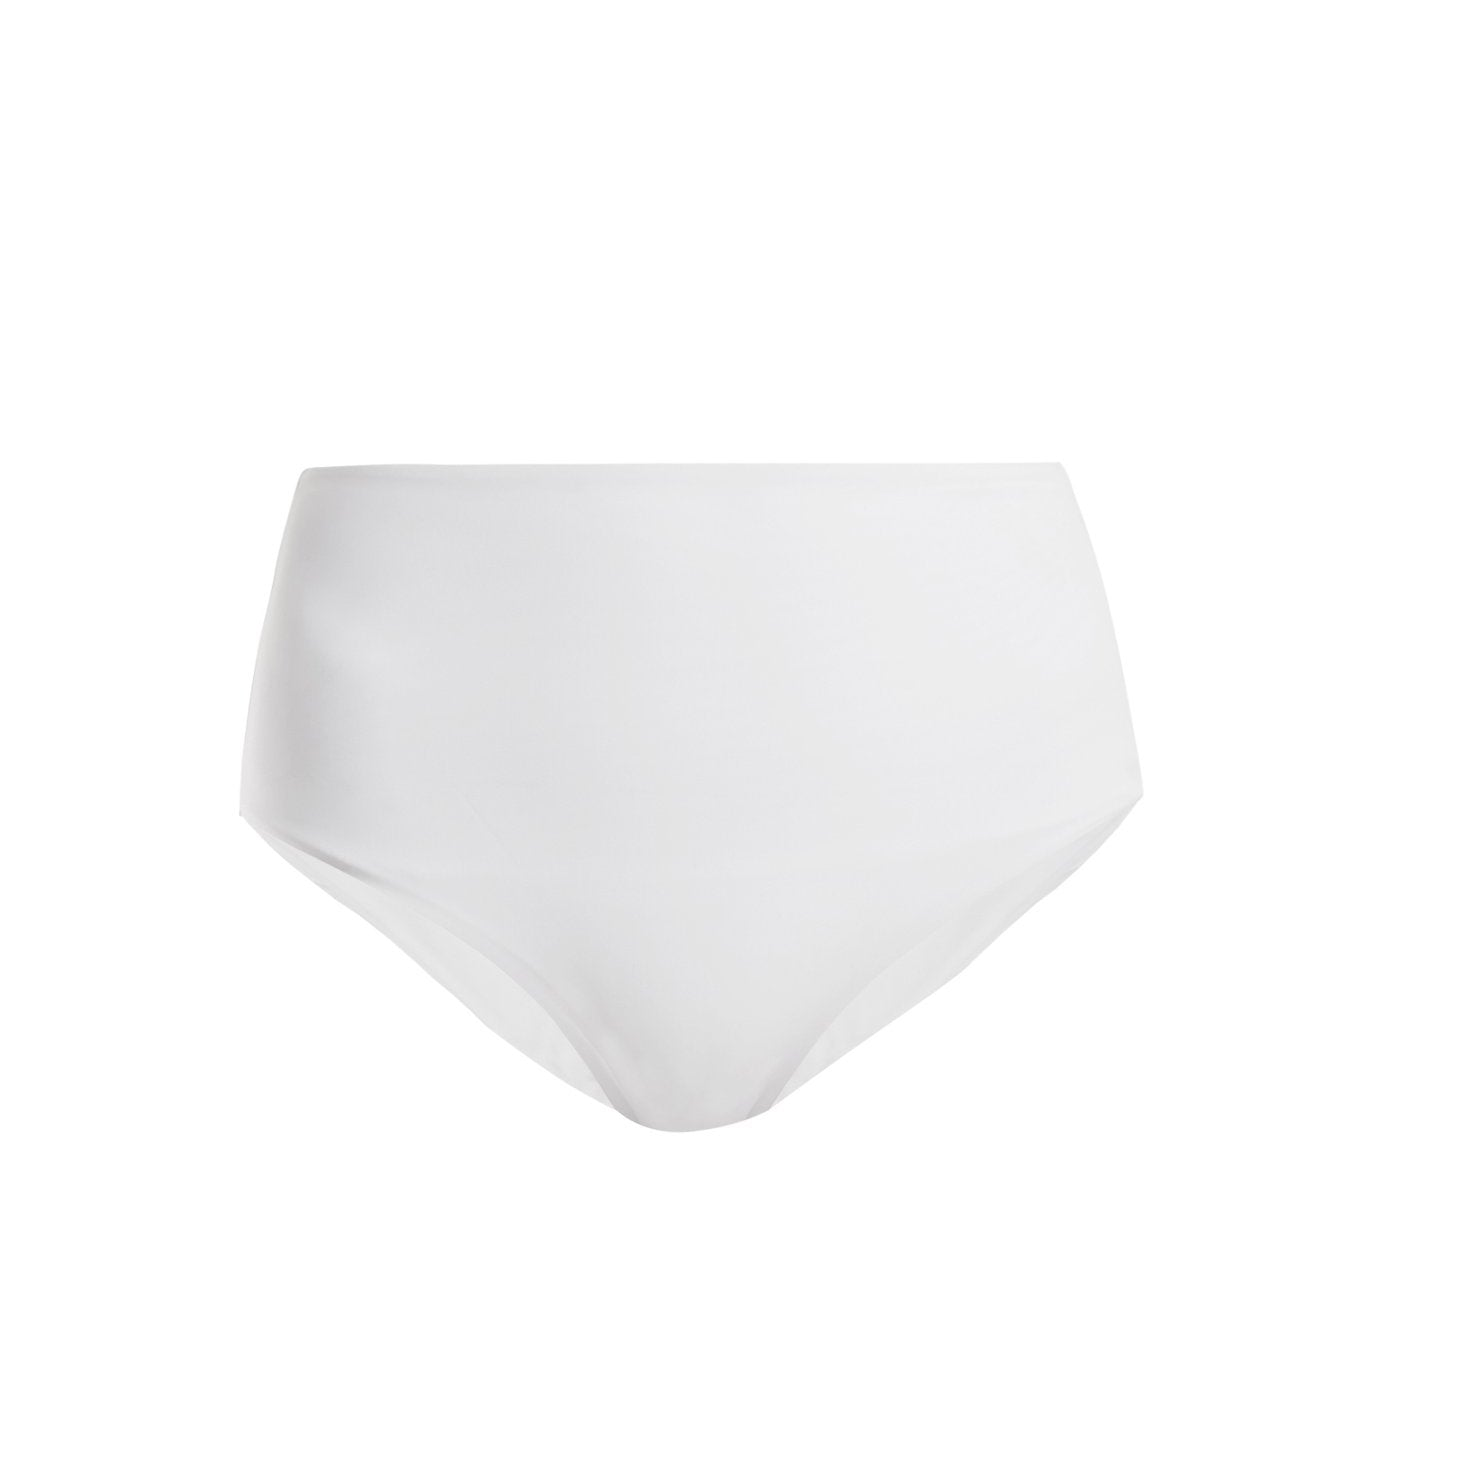 Bound high waist bikini briefs in White